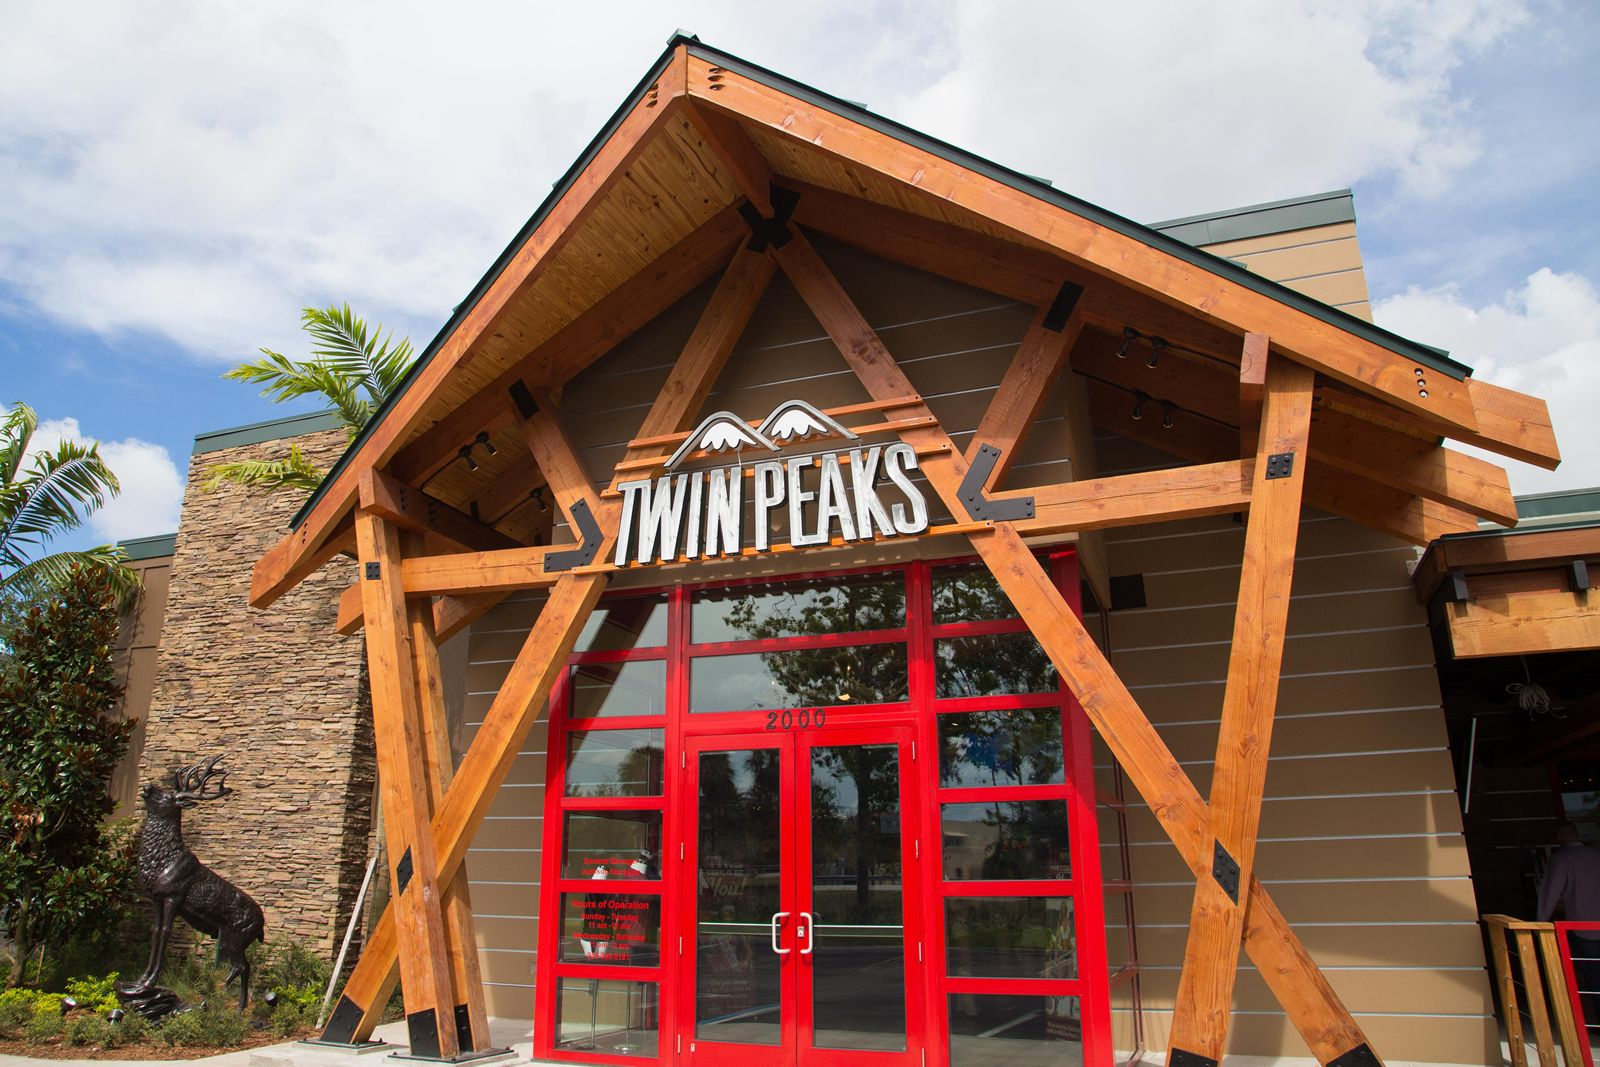 Twin Peaks Executes New Development Agreement with Permian Entertainment, LLC